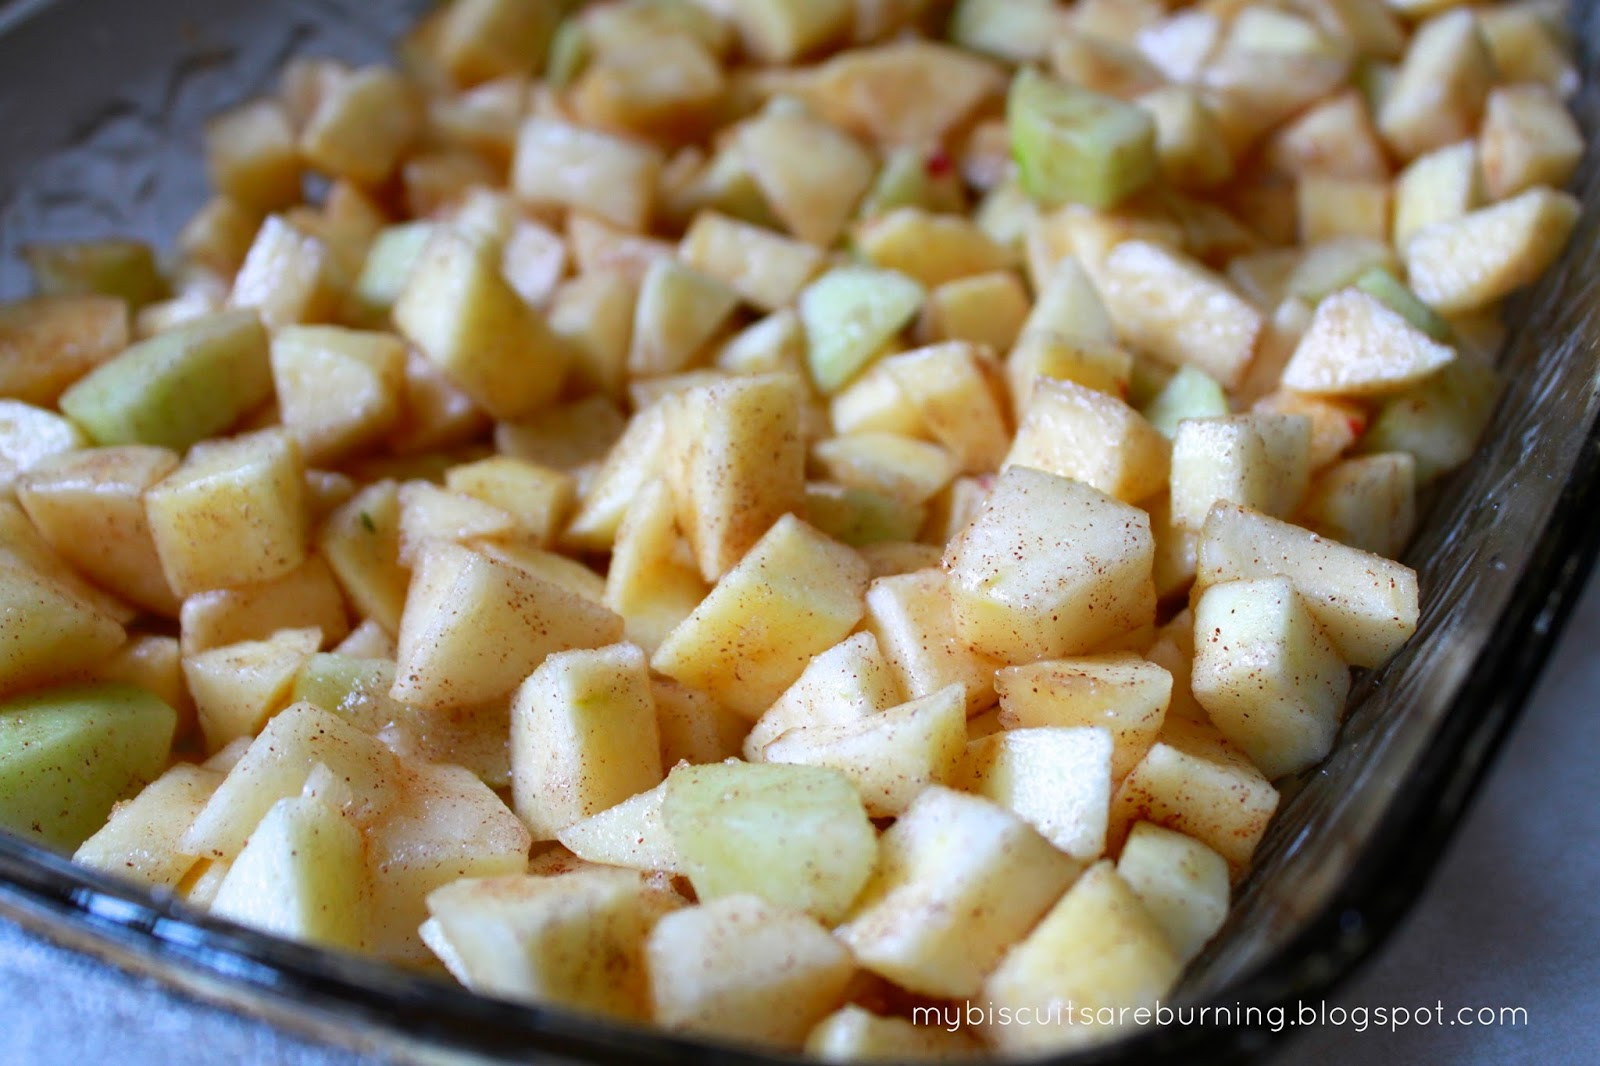 See The Specks Of Cinnamon Mixed Into Apples With Sugar And Lemon Juice Yum